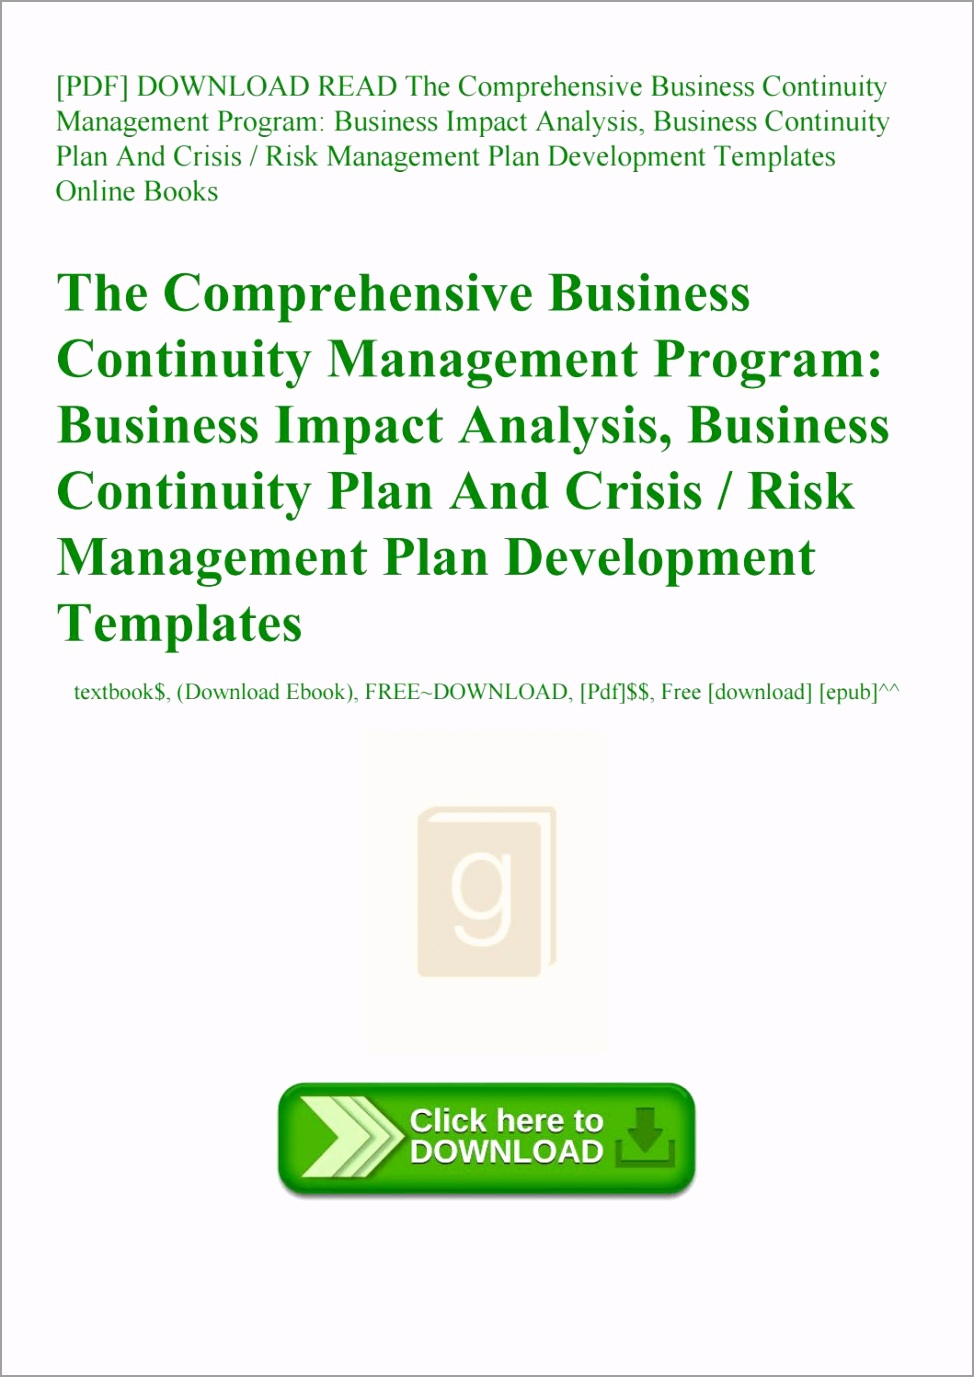 sample business continuity plan pdf free plate excel for small of simple tayet